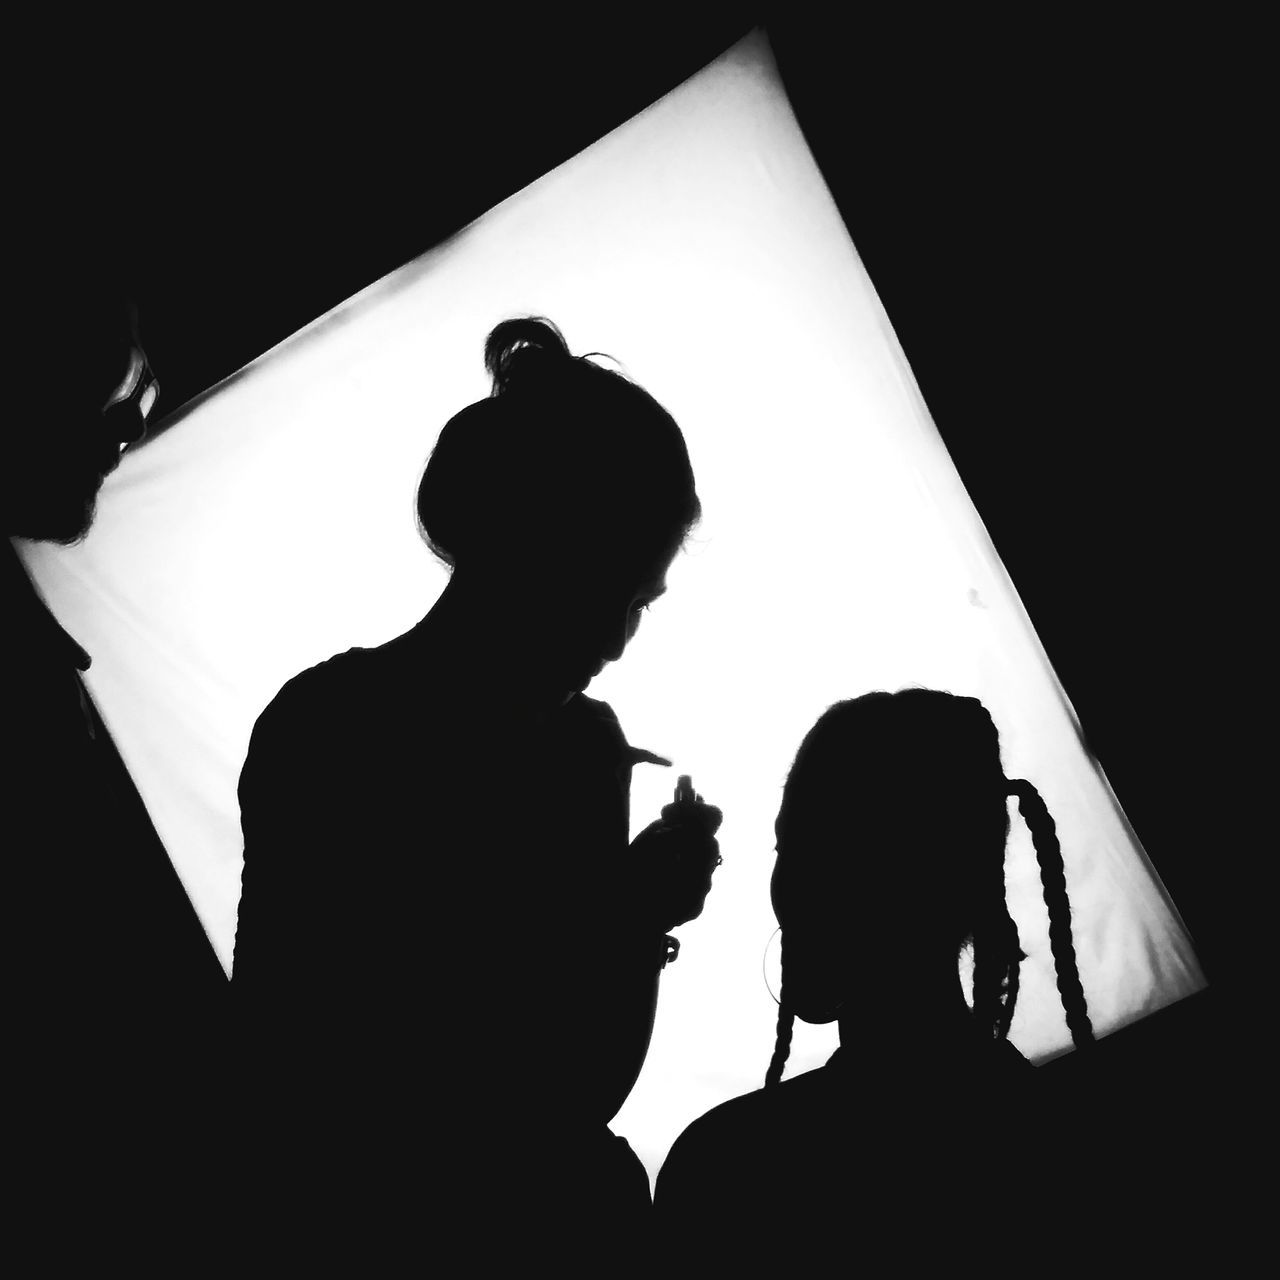 Behind the scenes. Behindthescenes Two People Silhouette Shadow Fashion Styling Stylist Against The Light Bnw Rihanna Makeup Model Studio Photography Fashionista Hidden Unexplored Mysterious Illusion